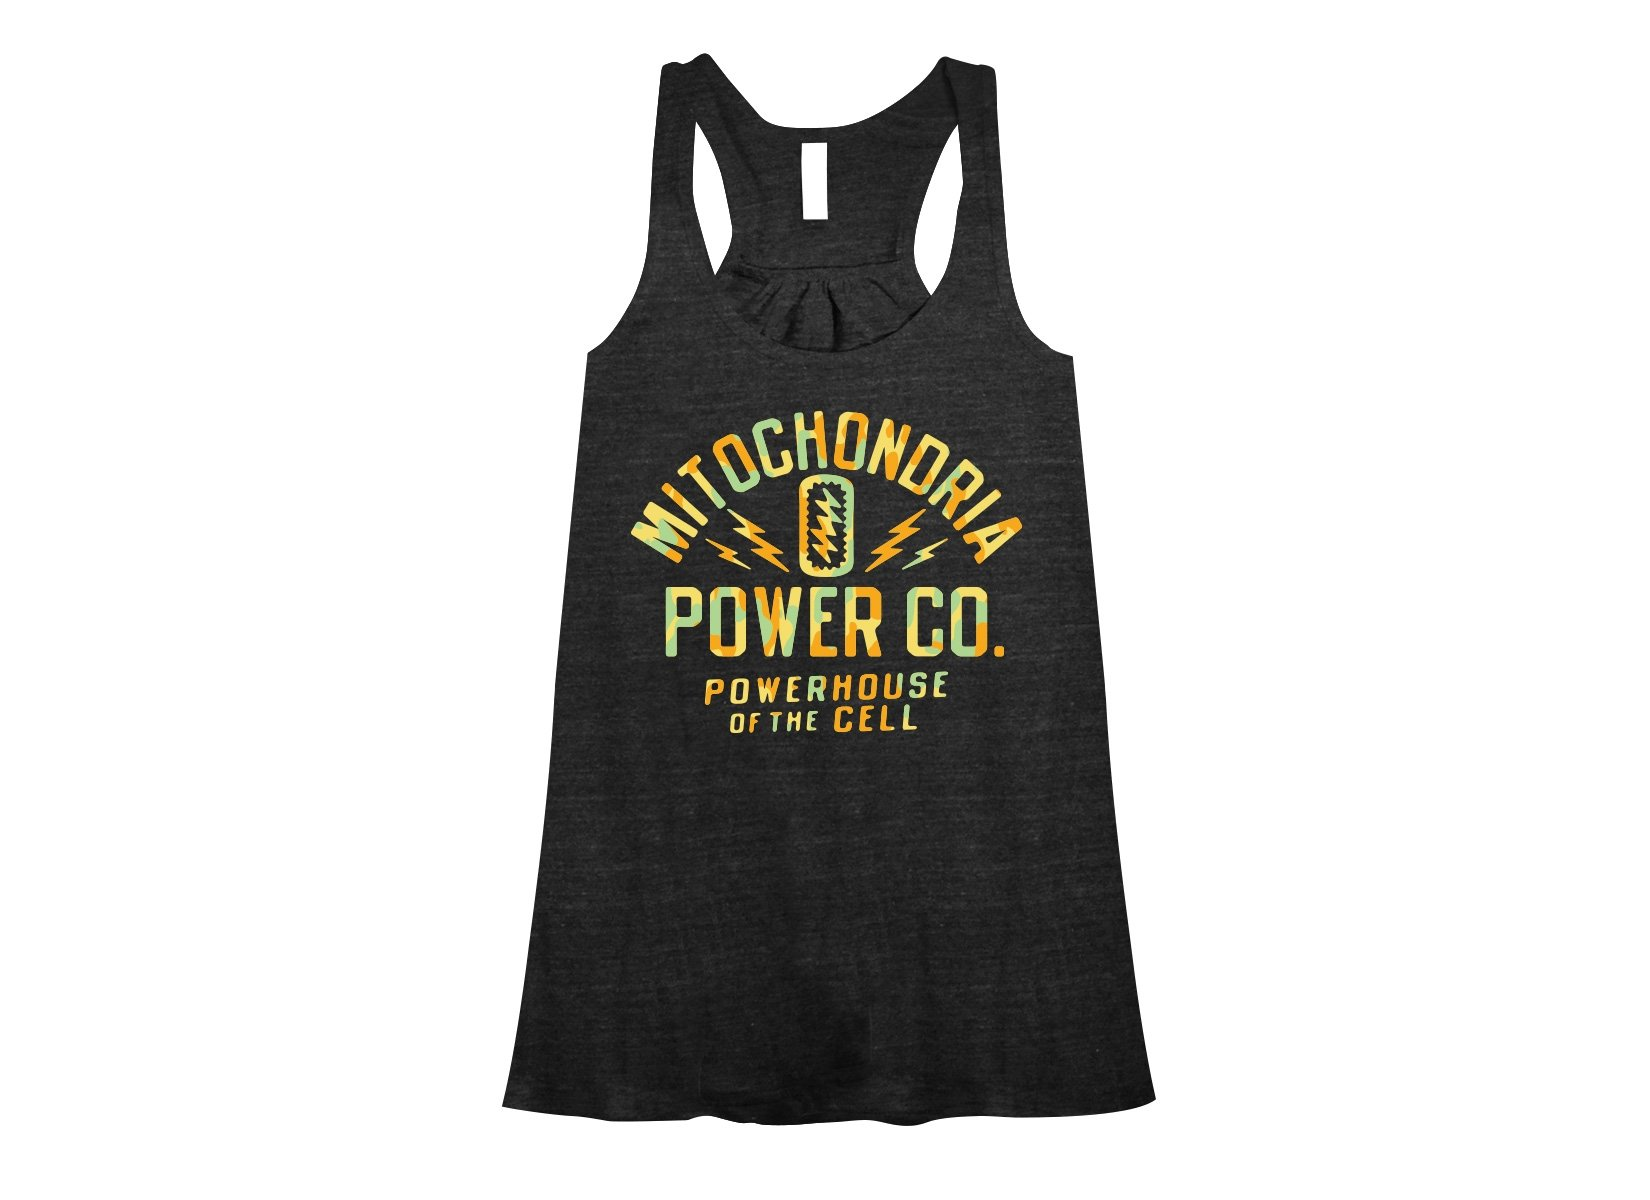 Mitochondria Powerhouse Of The Cell on Womens Tanks T-Shirt